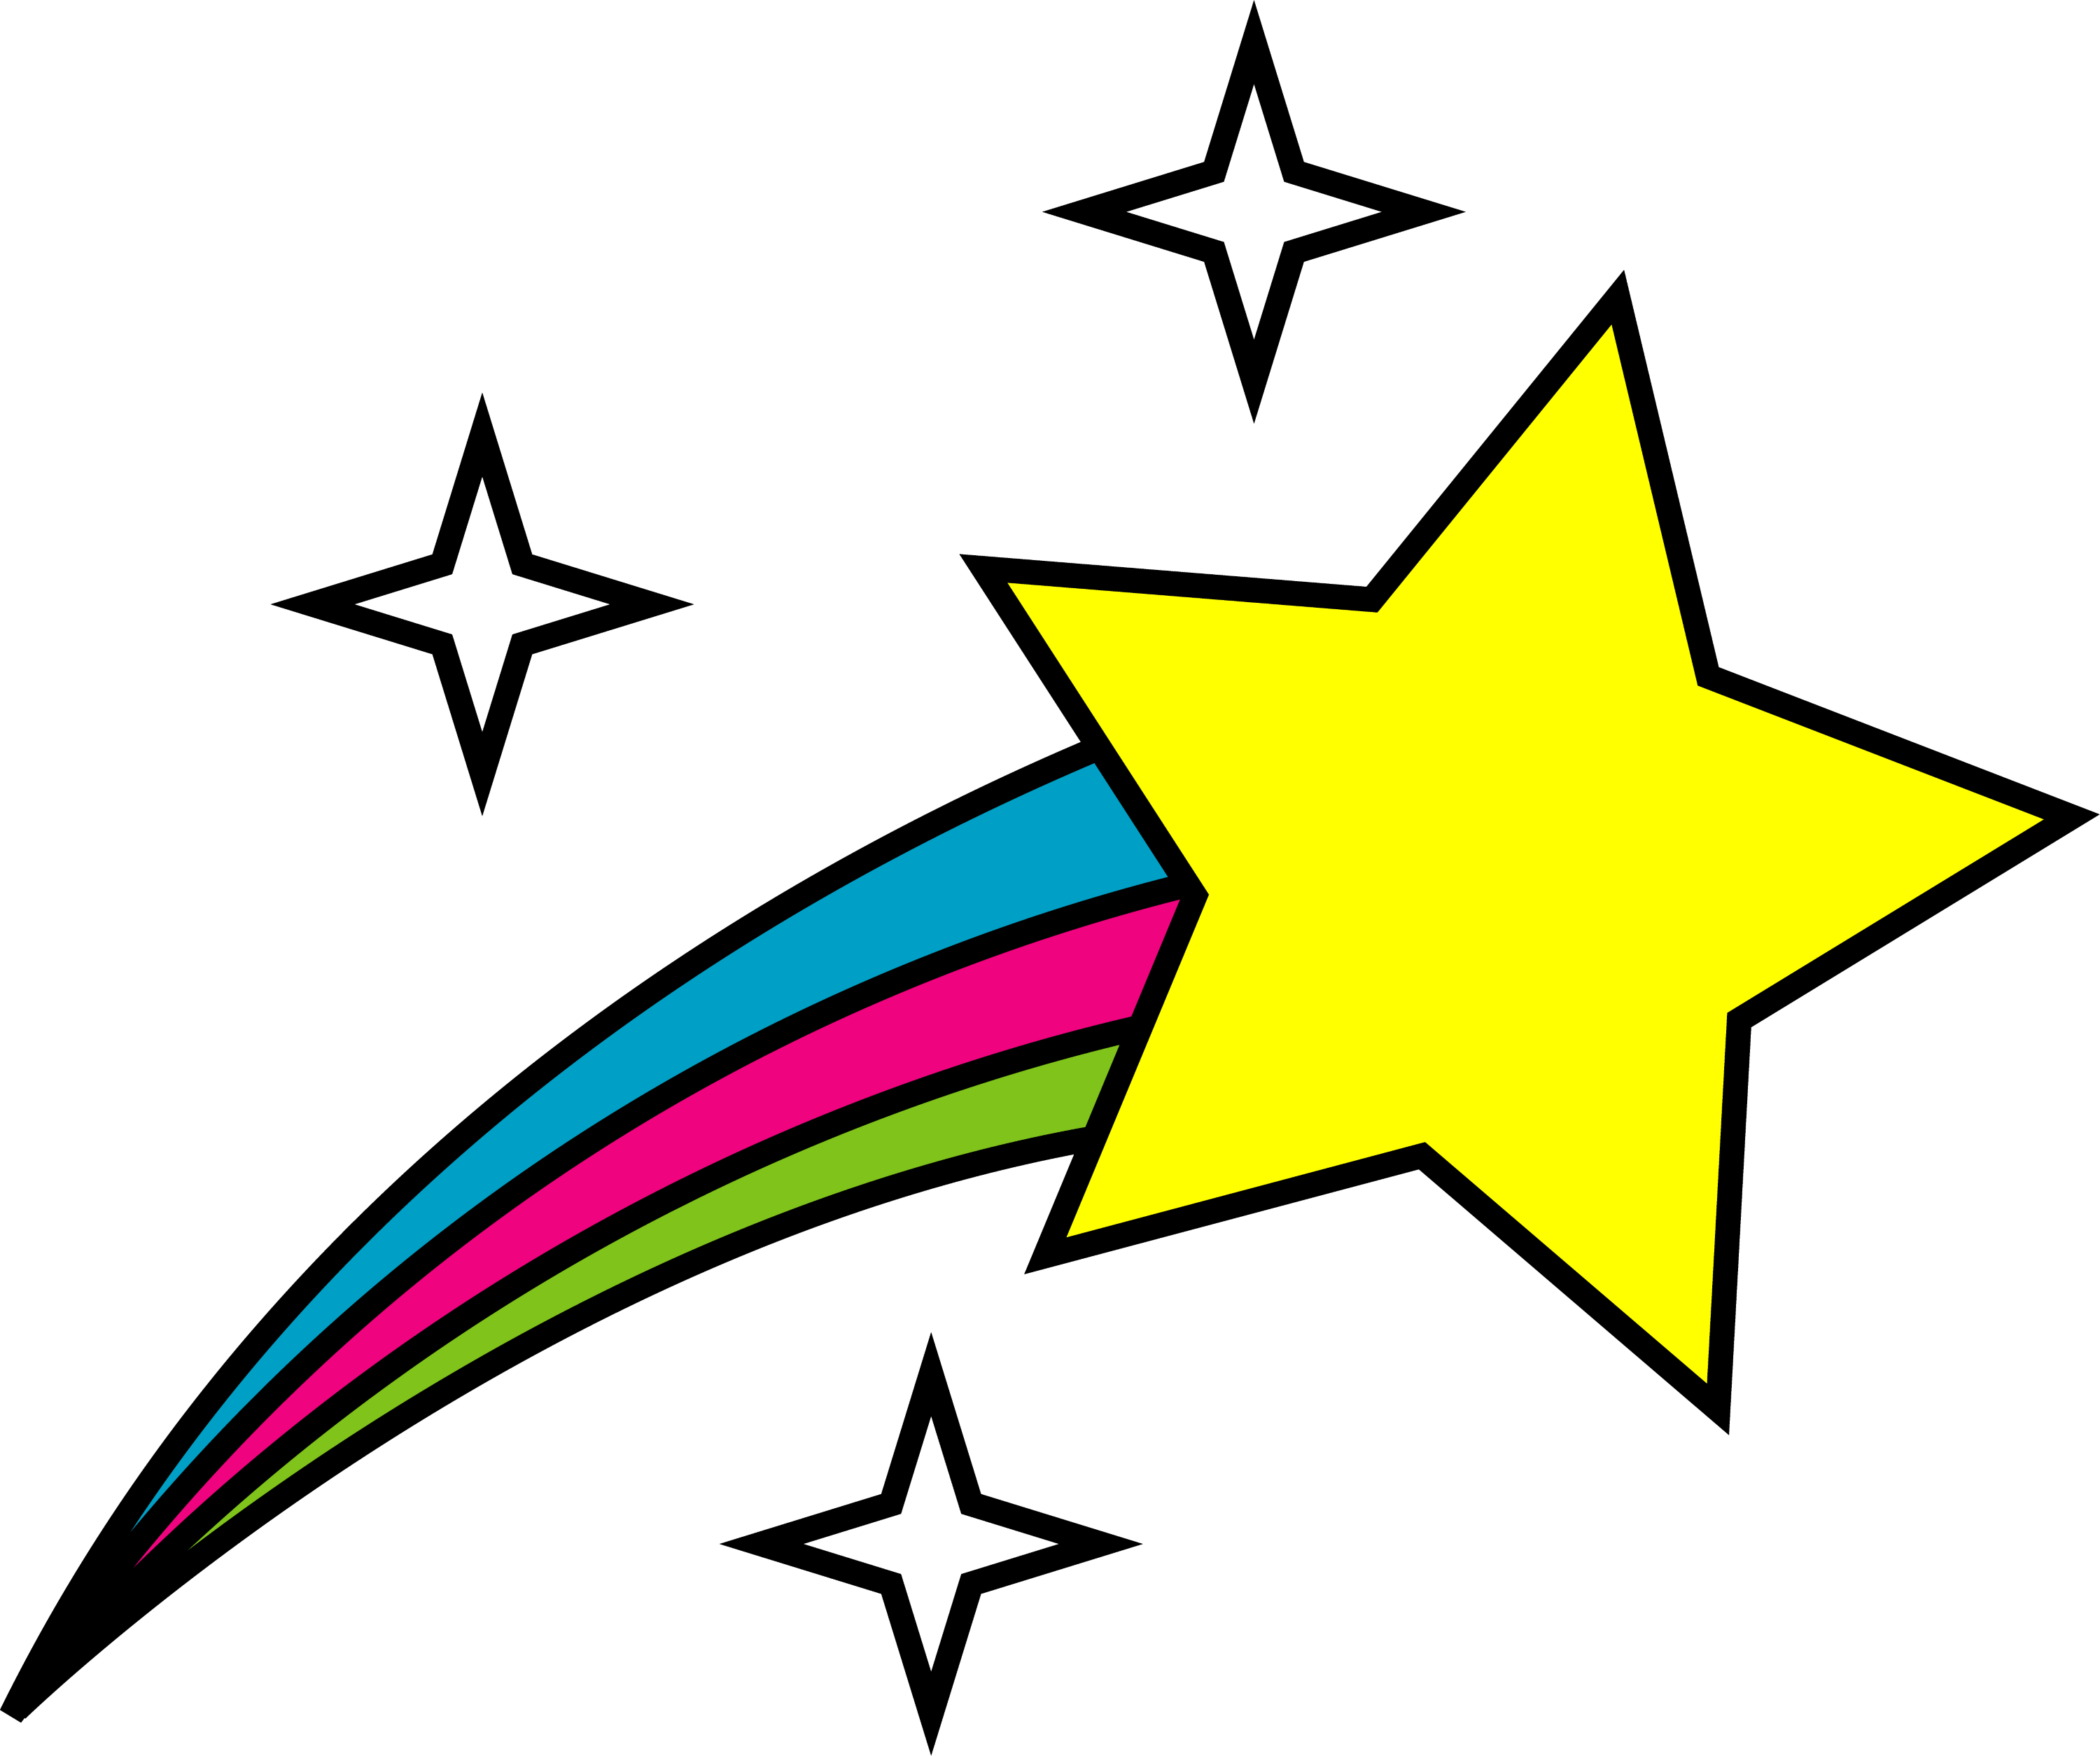 Simple Shooting Star Symbol